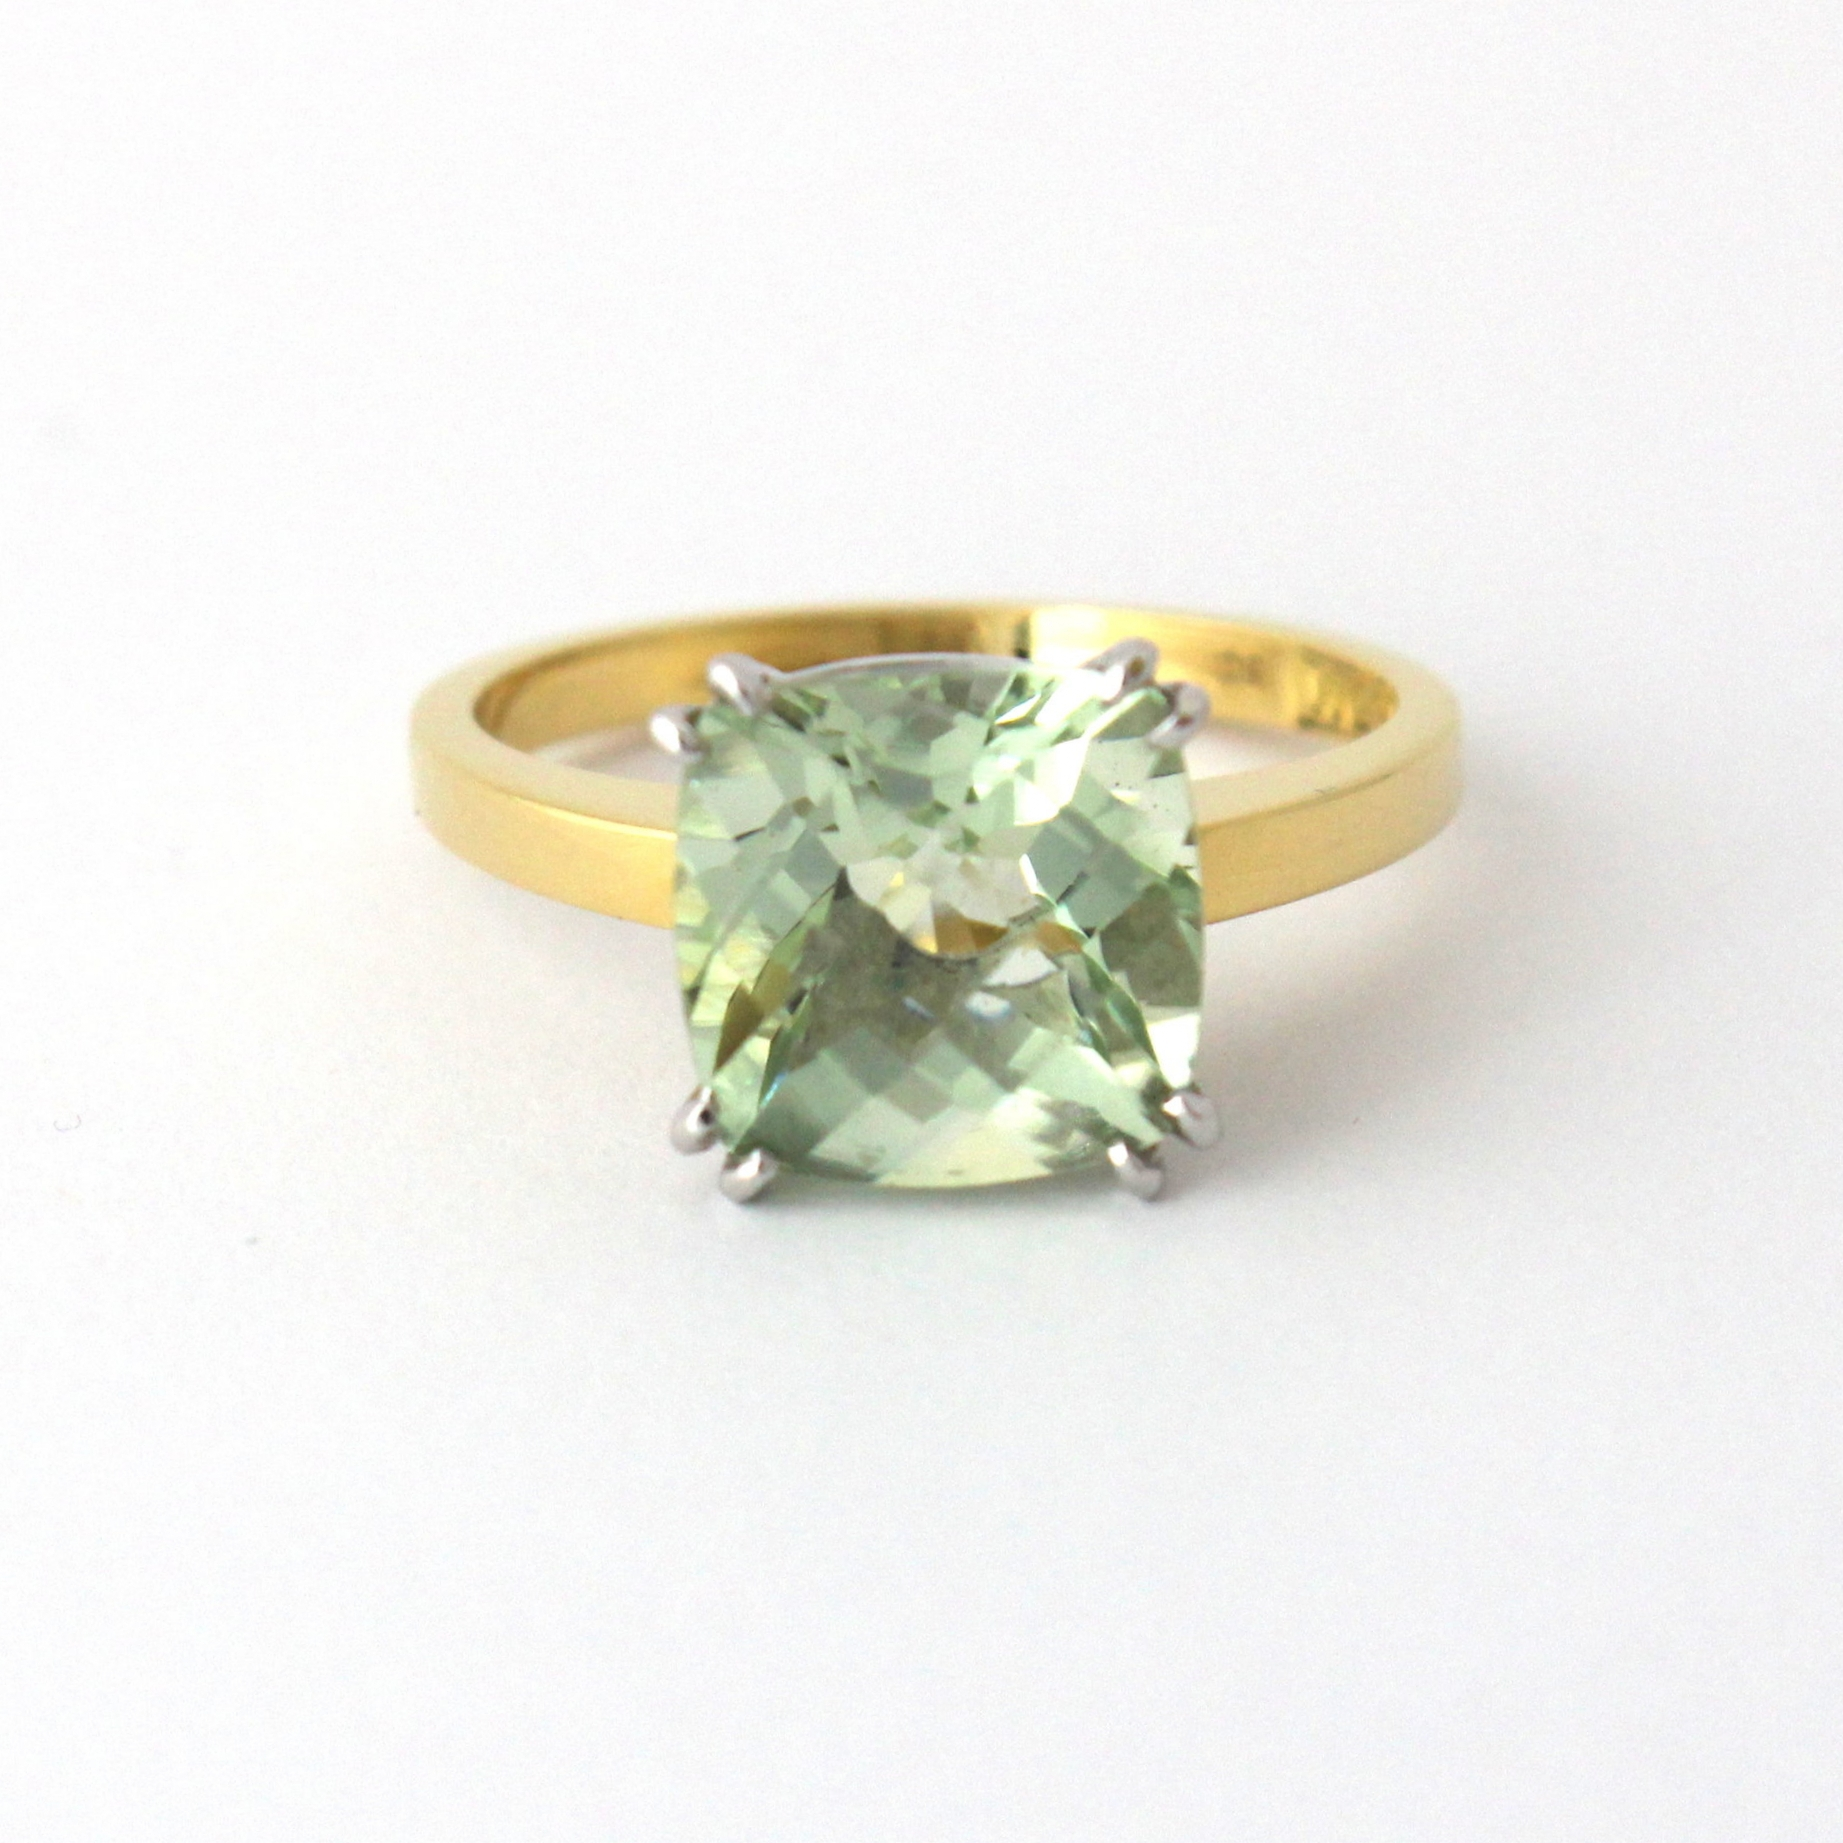 Chequerboard prasiolite (green quartz) set in yellow and white gold.